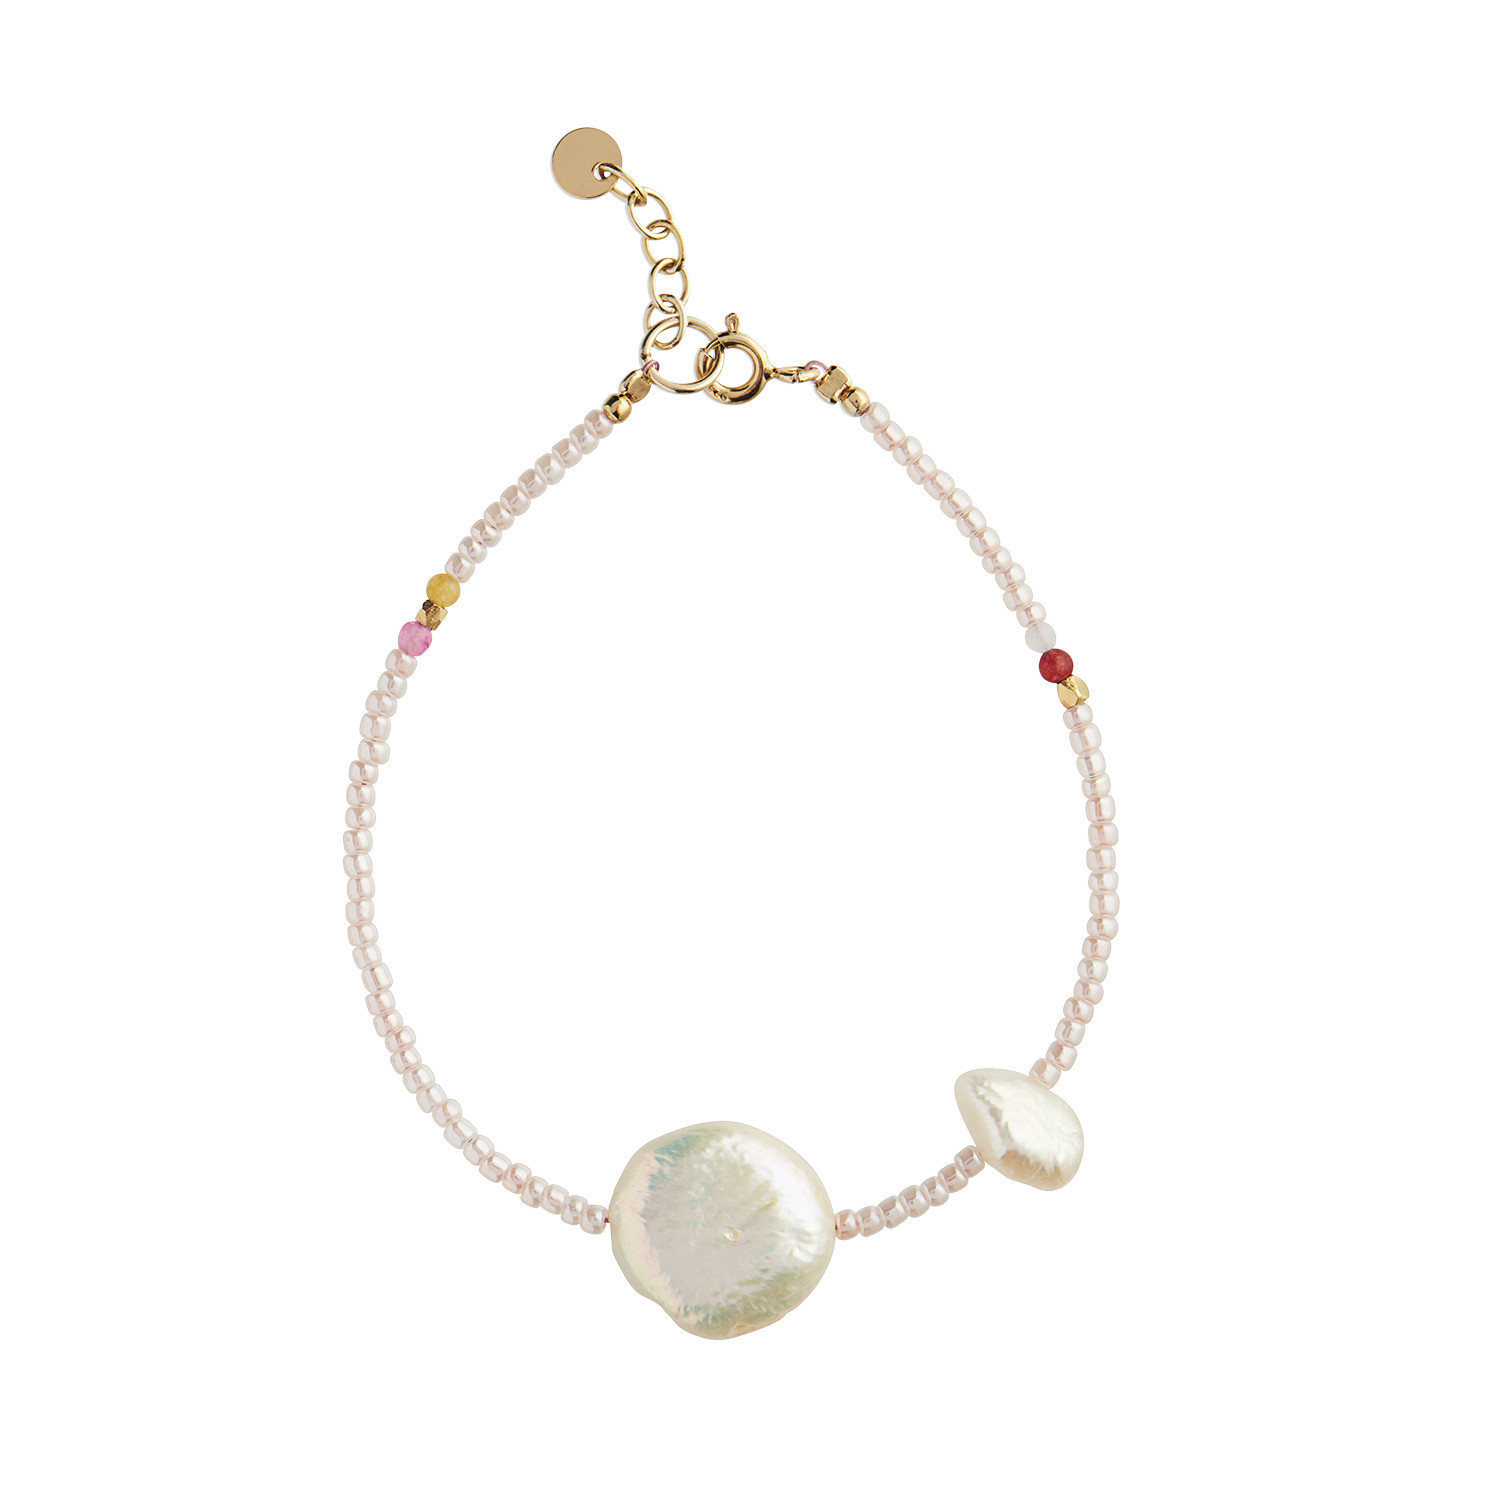 Vanilla Pearl Bracelet - Freshwater Pearls, Gemstones and Glass Beads Gold